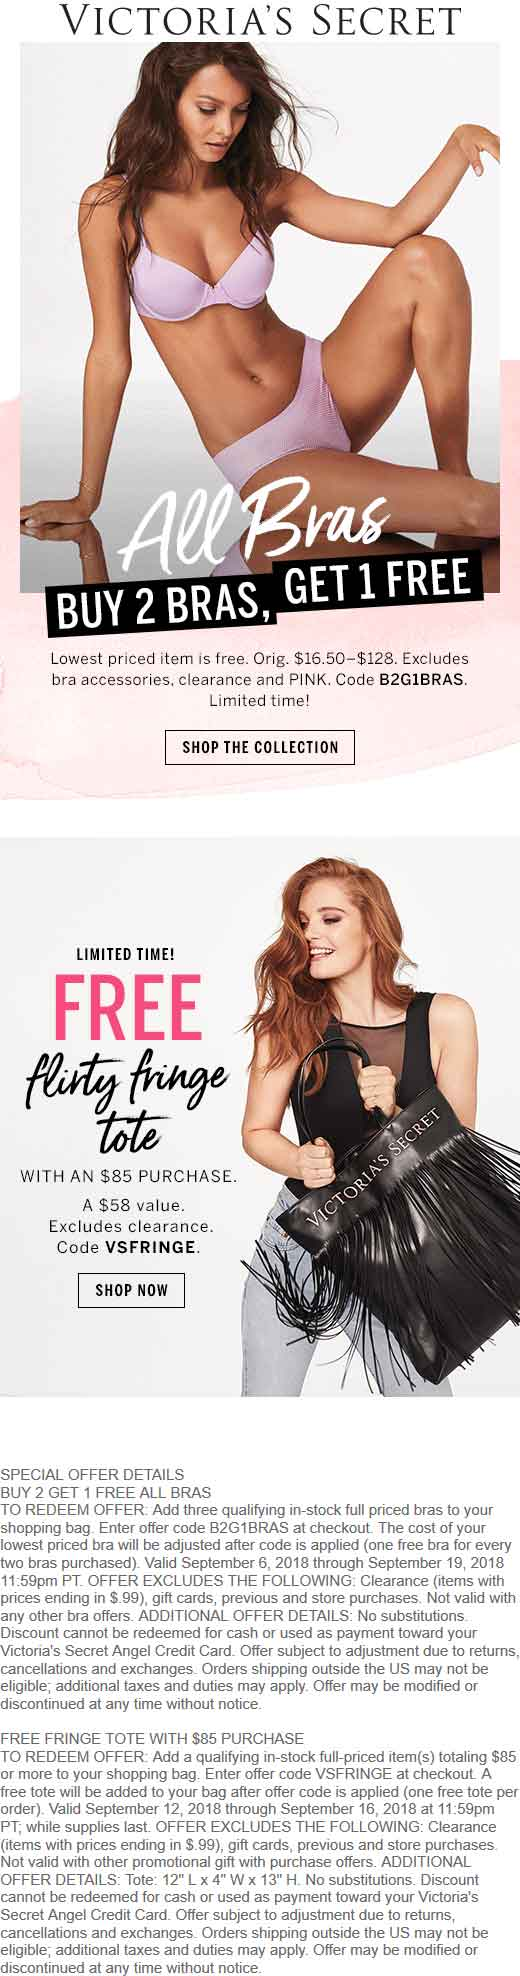 Victorias Secret Coupon May 2019 Free fringe tote with $85 spent today at Victorias Secret, or online via promo code VSFRINGE